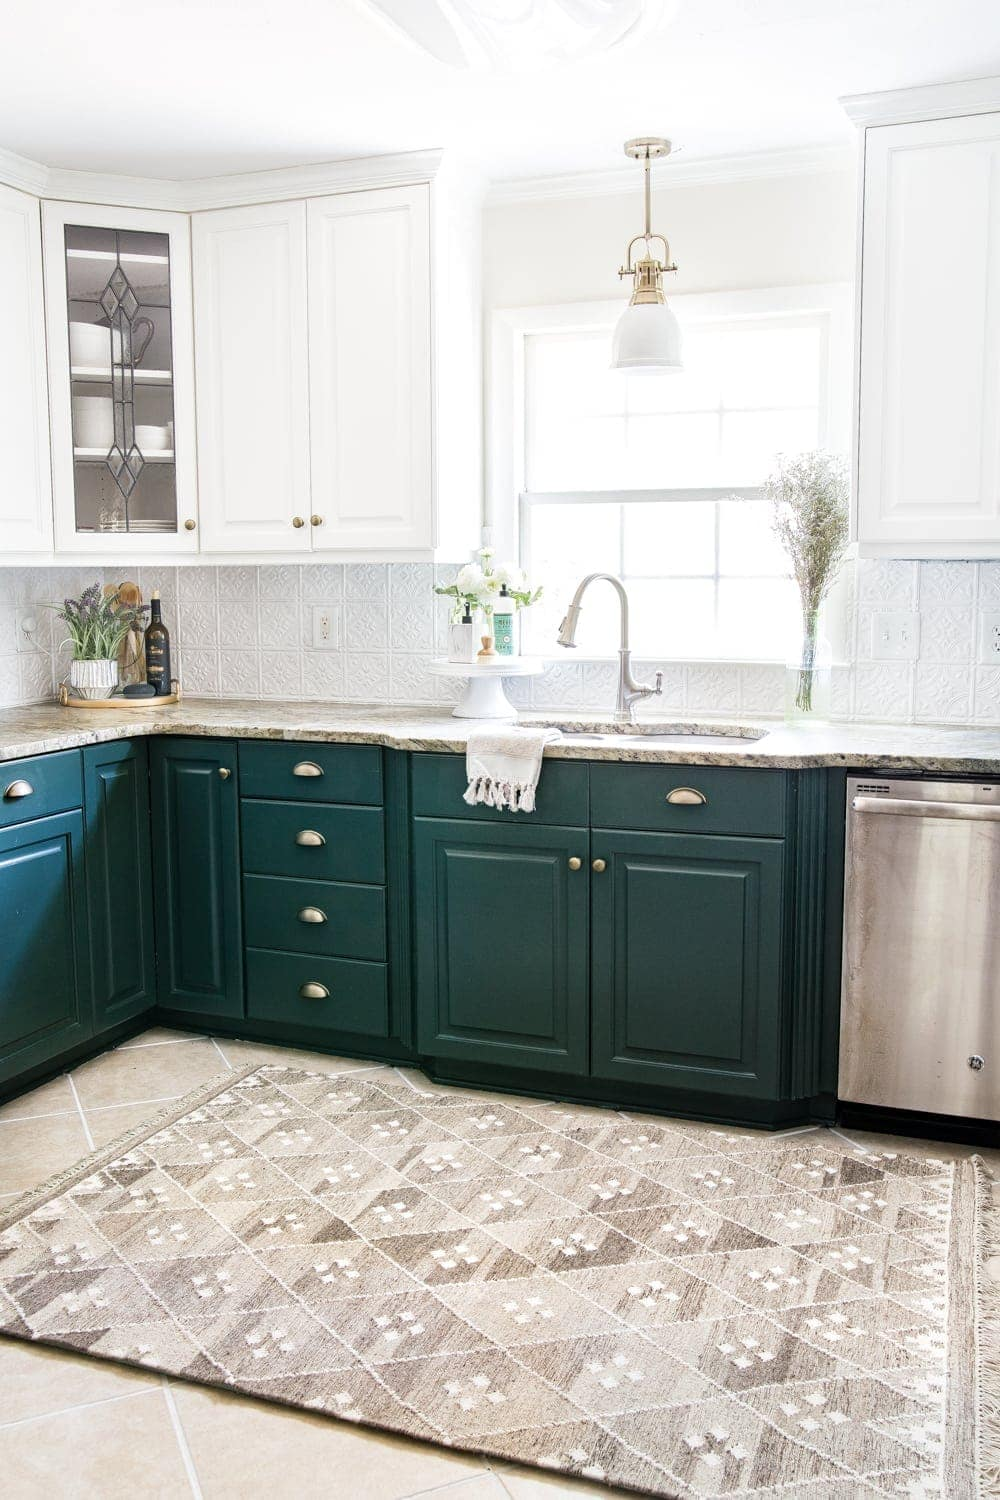 Kitchen cabinet paint colors - Sherwin Williams Billiard Green and Benjamin Moore Simply White